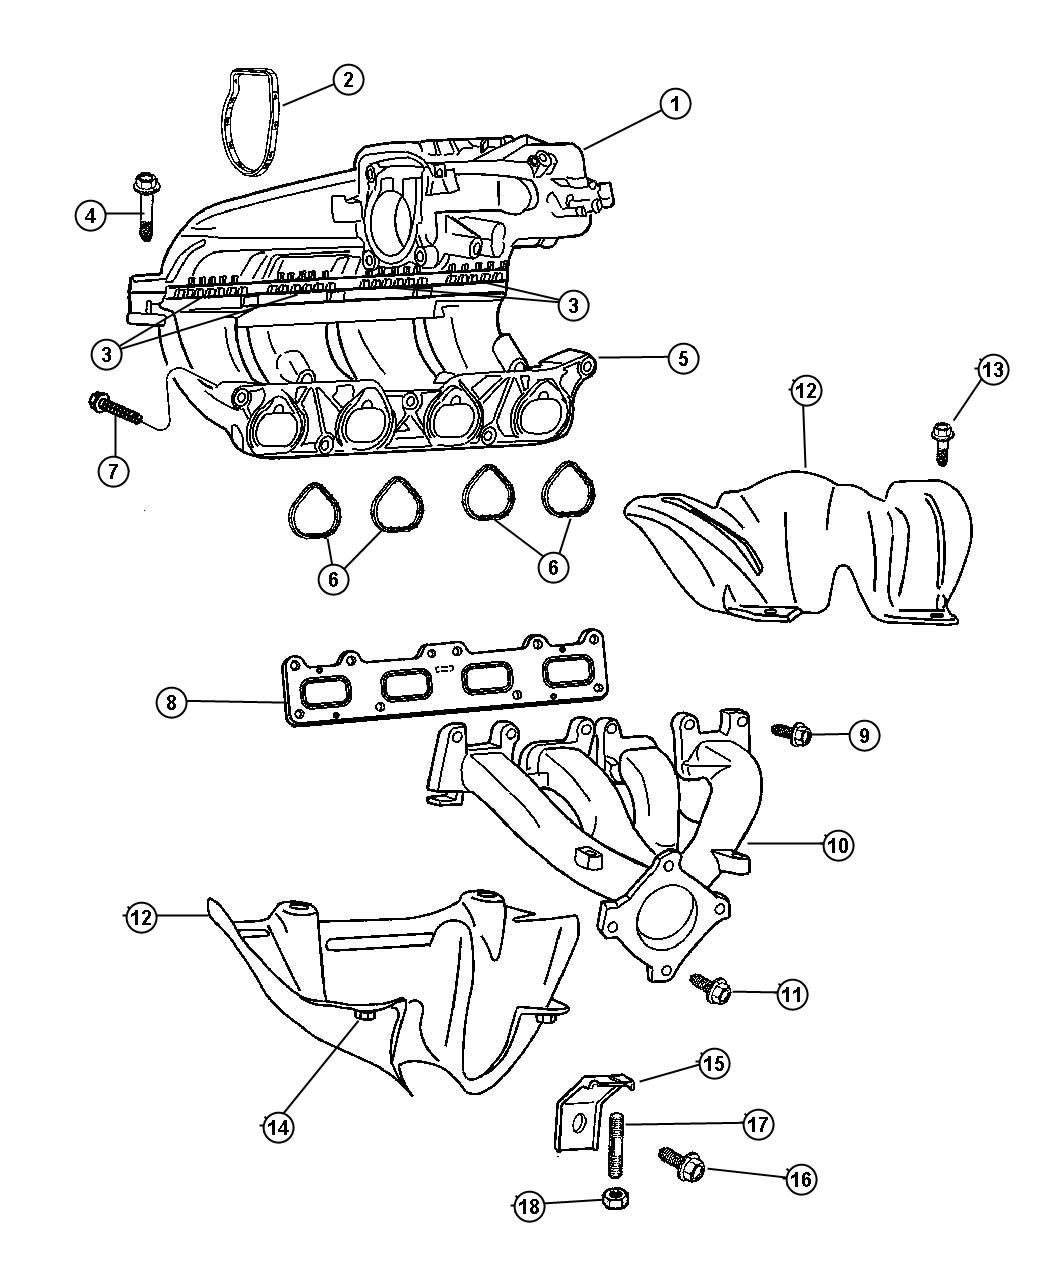 Service manual [2001 Chrysler Pt Cruiser Intake Removal